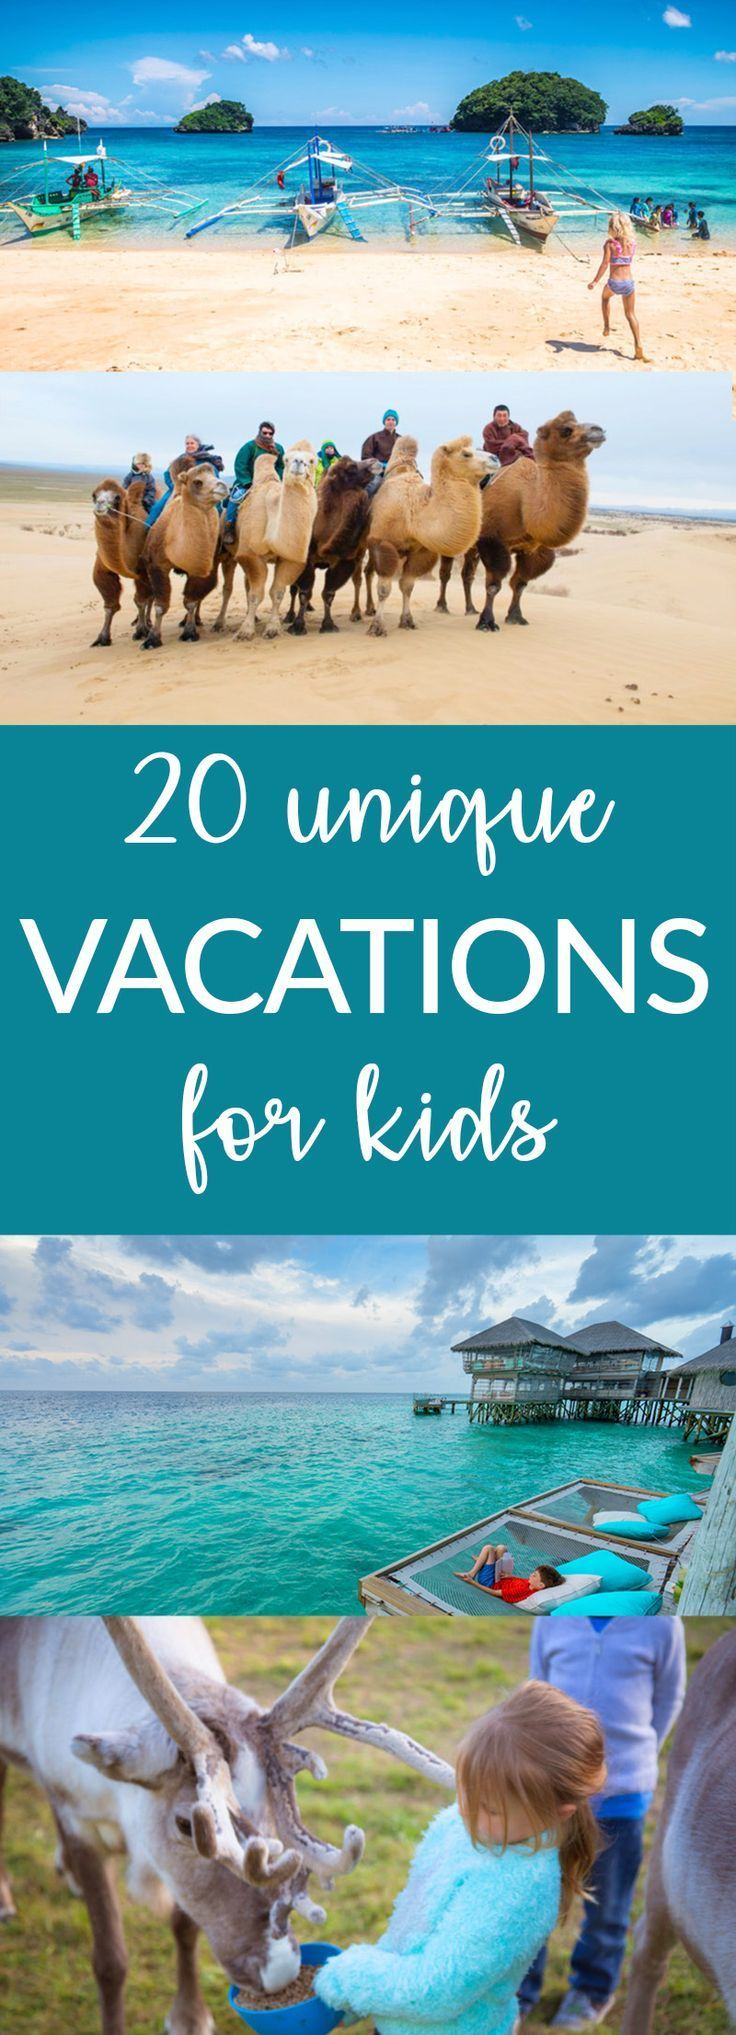 Looking for a unique vacation for kids? 20 Unique Vacations for Kids. #vacation #kids #familytravel